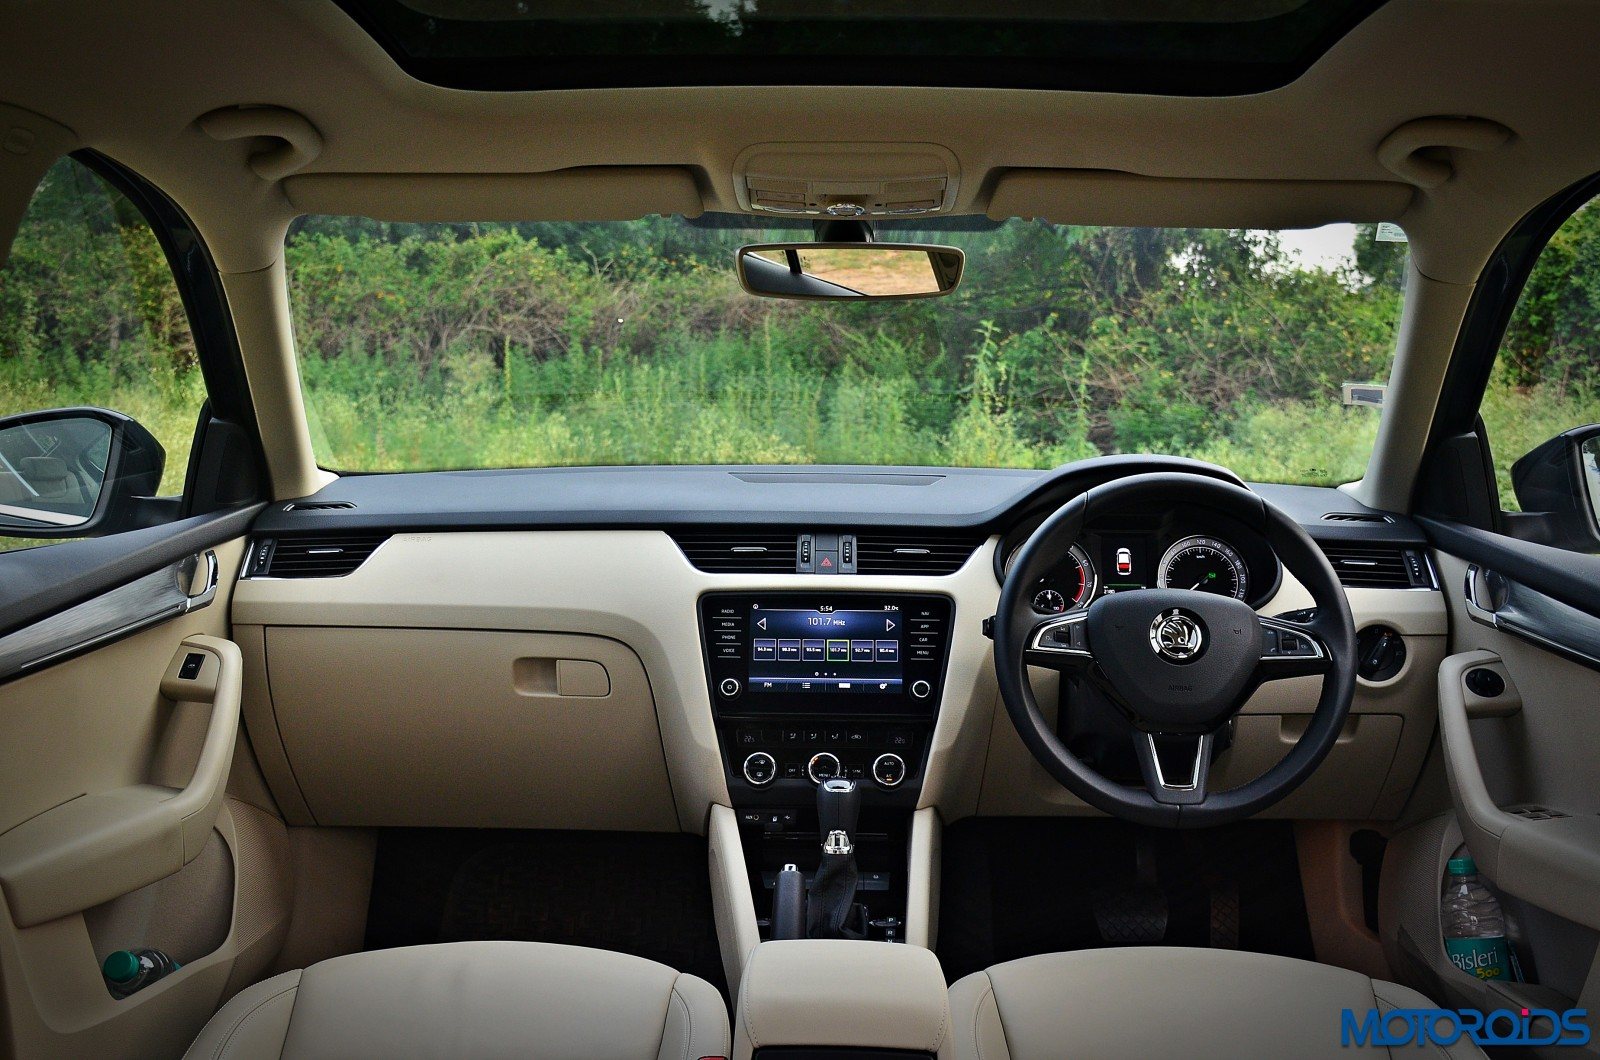 New-2017-Skoda-Octavia-Review-Cabin-view-1